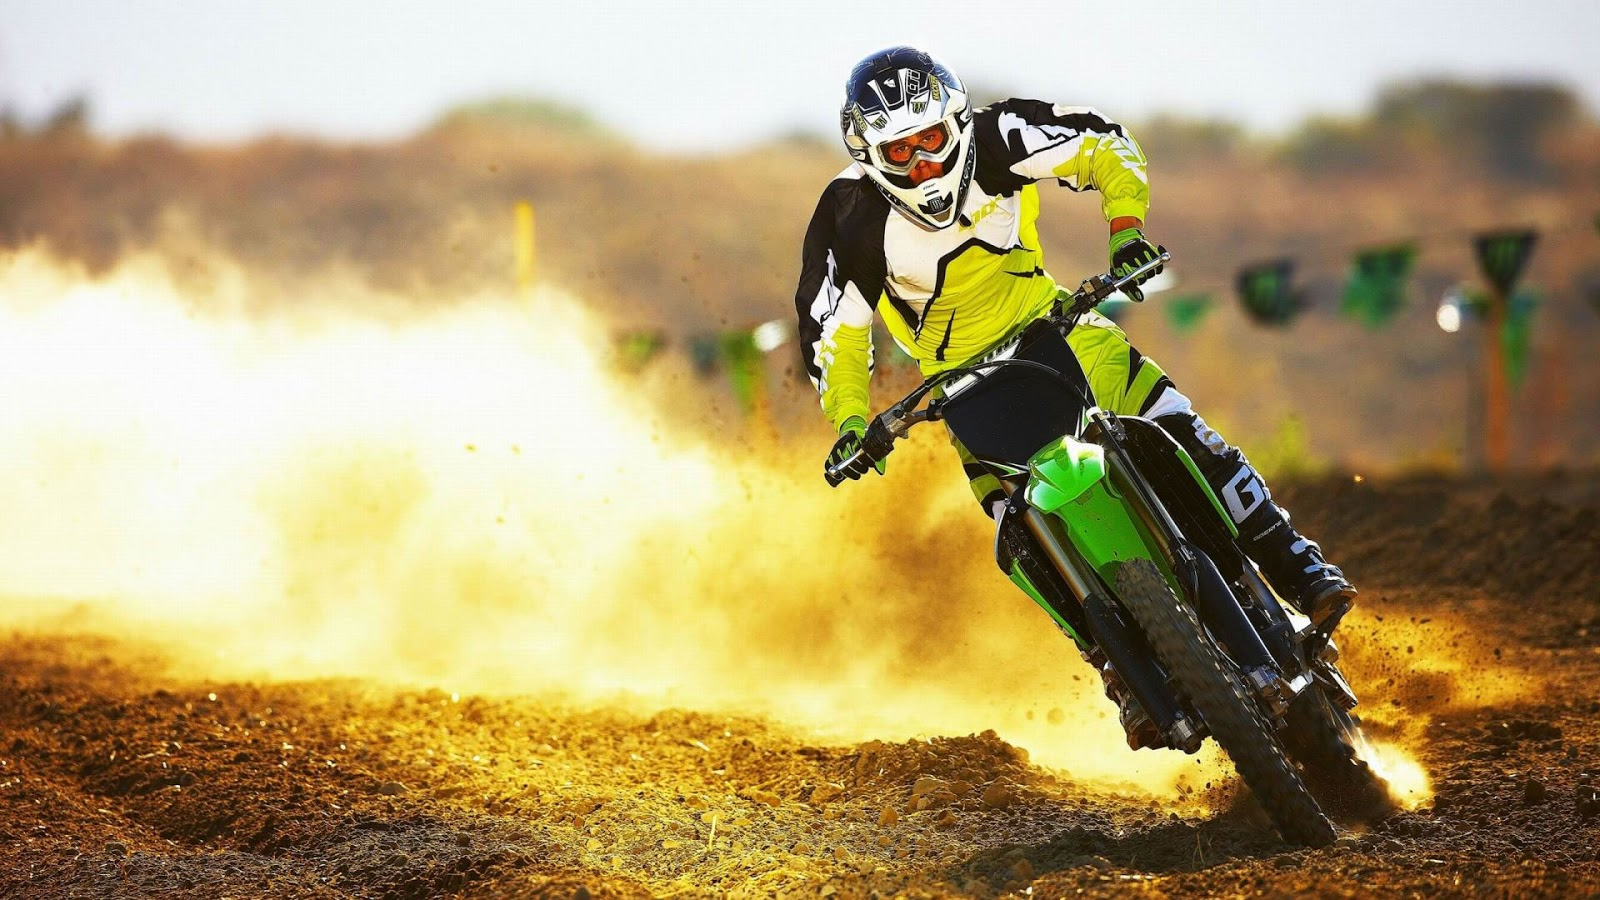 heavy bikes wallpapers free download - photo #23